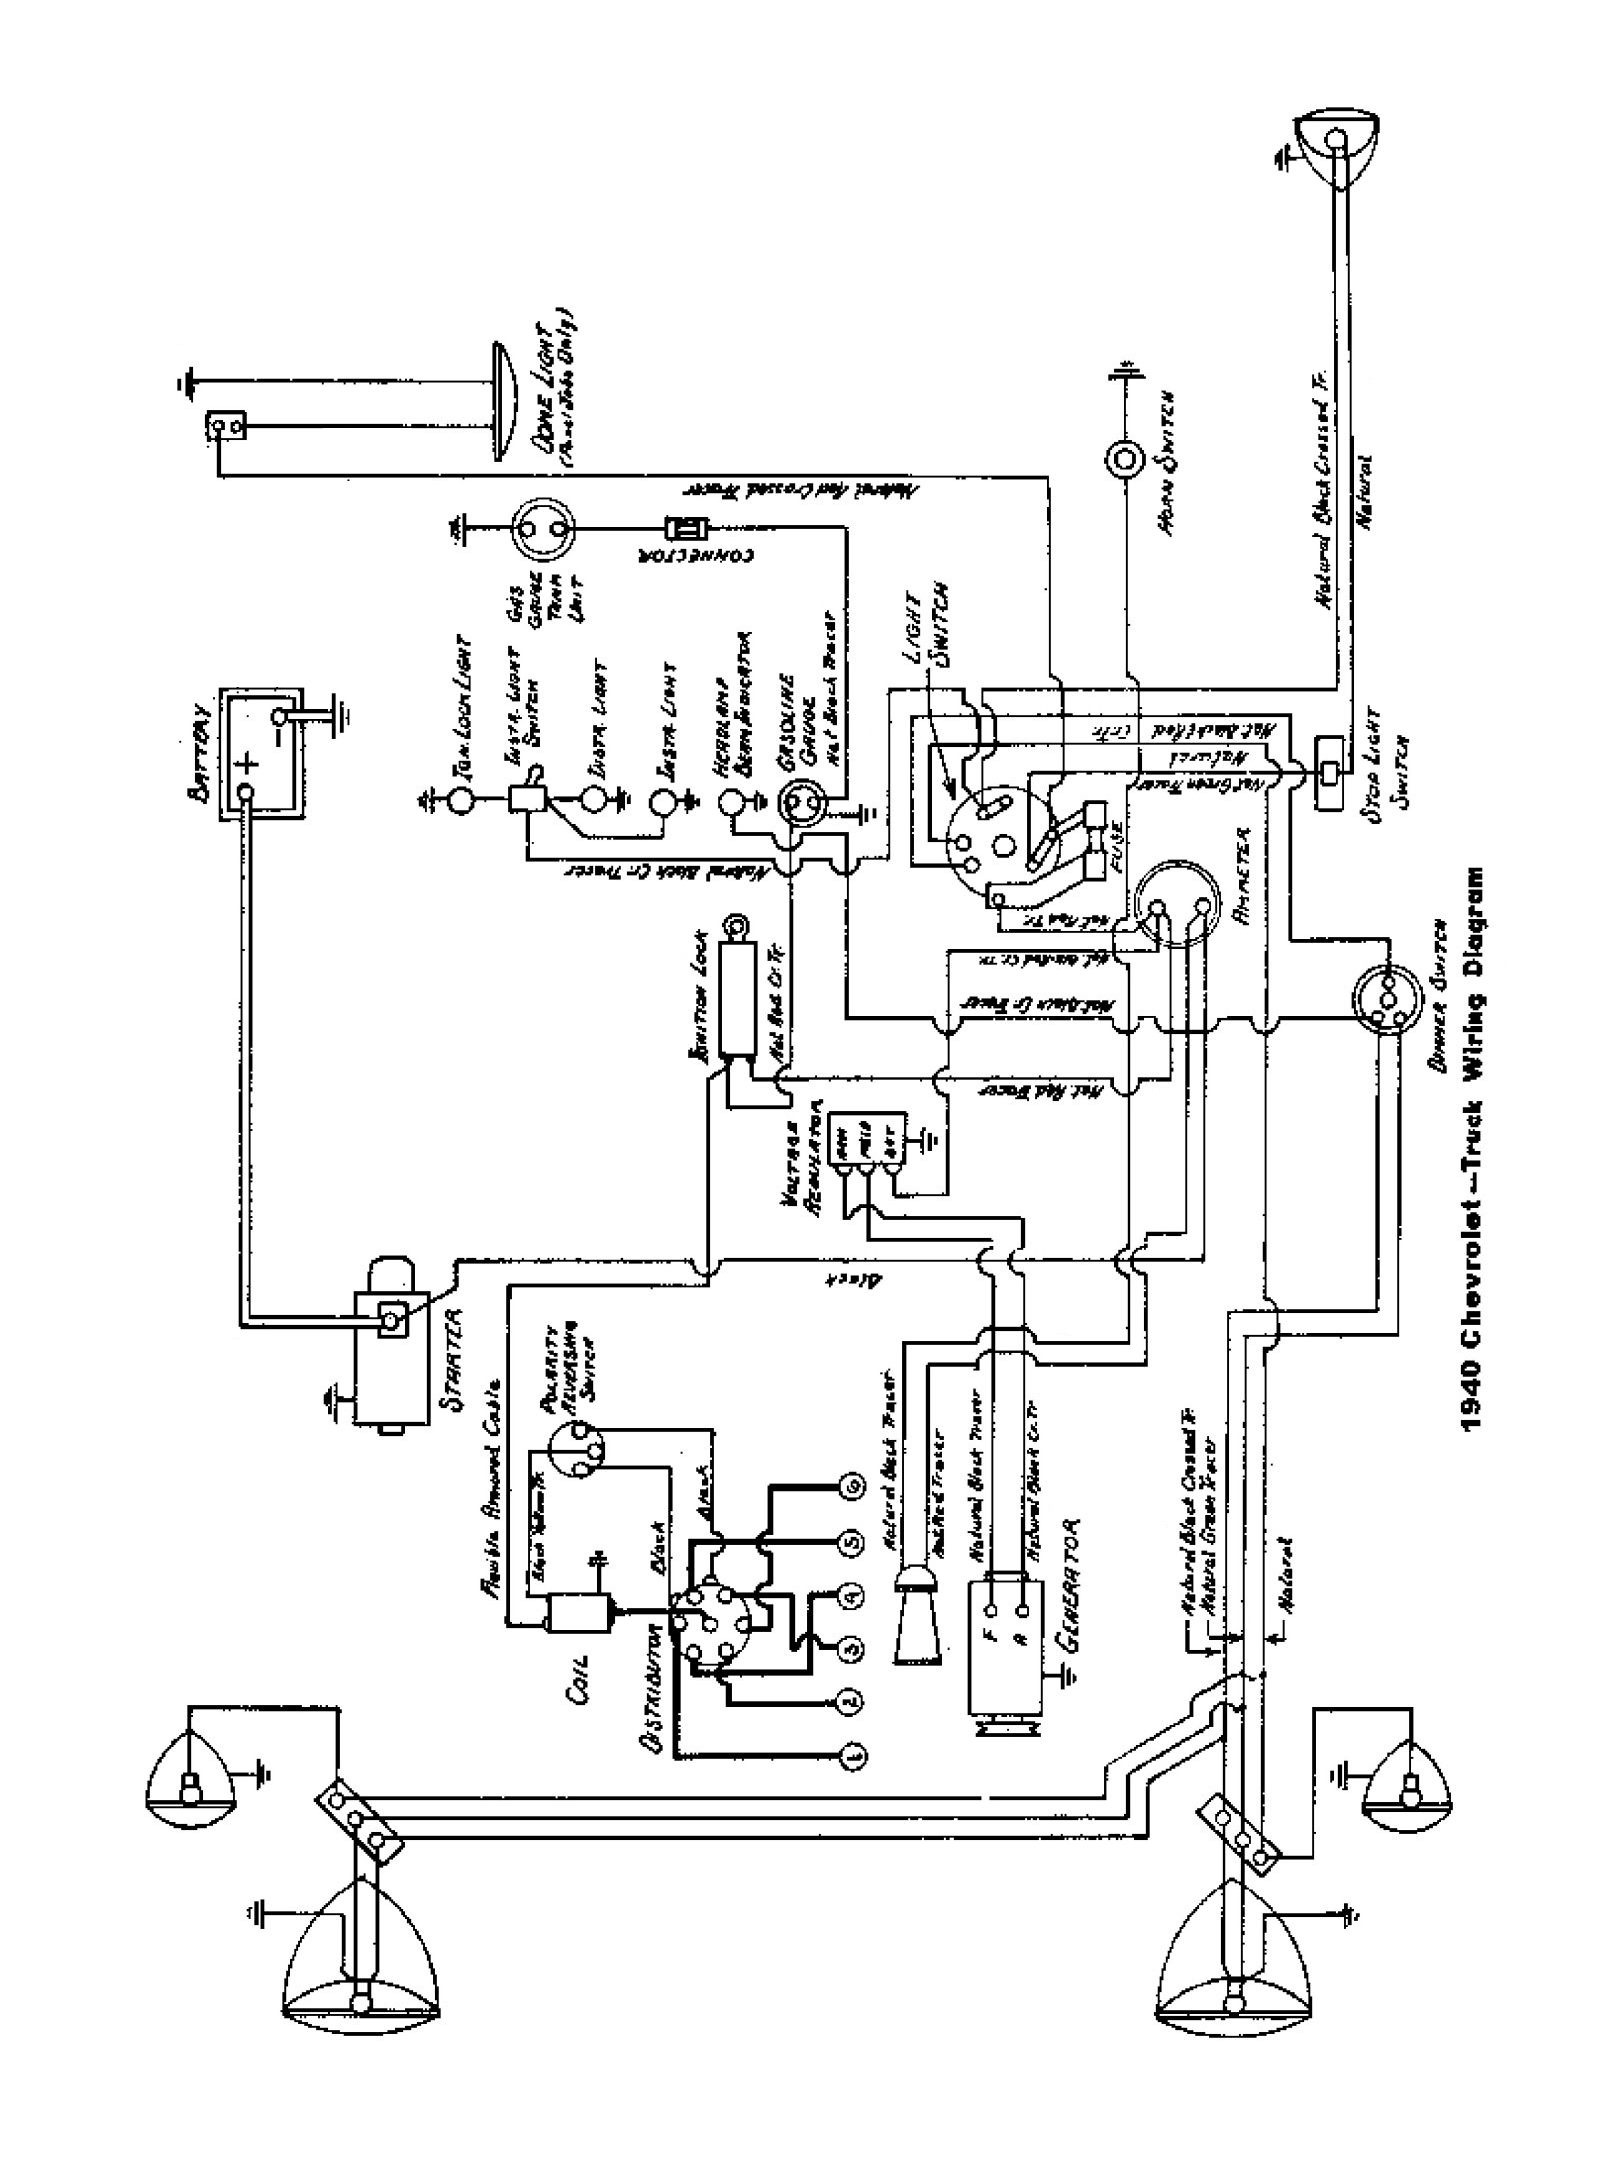 57 chevy pickup wiring wiring diagram 1957 chevrolet